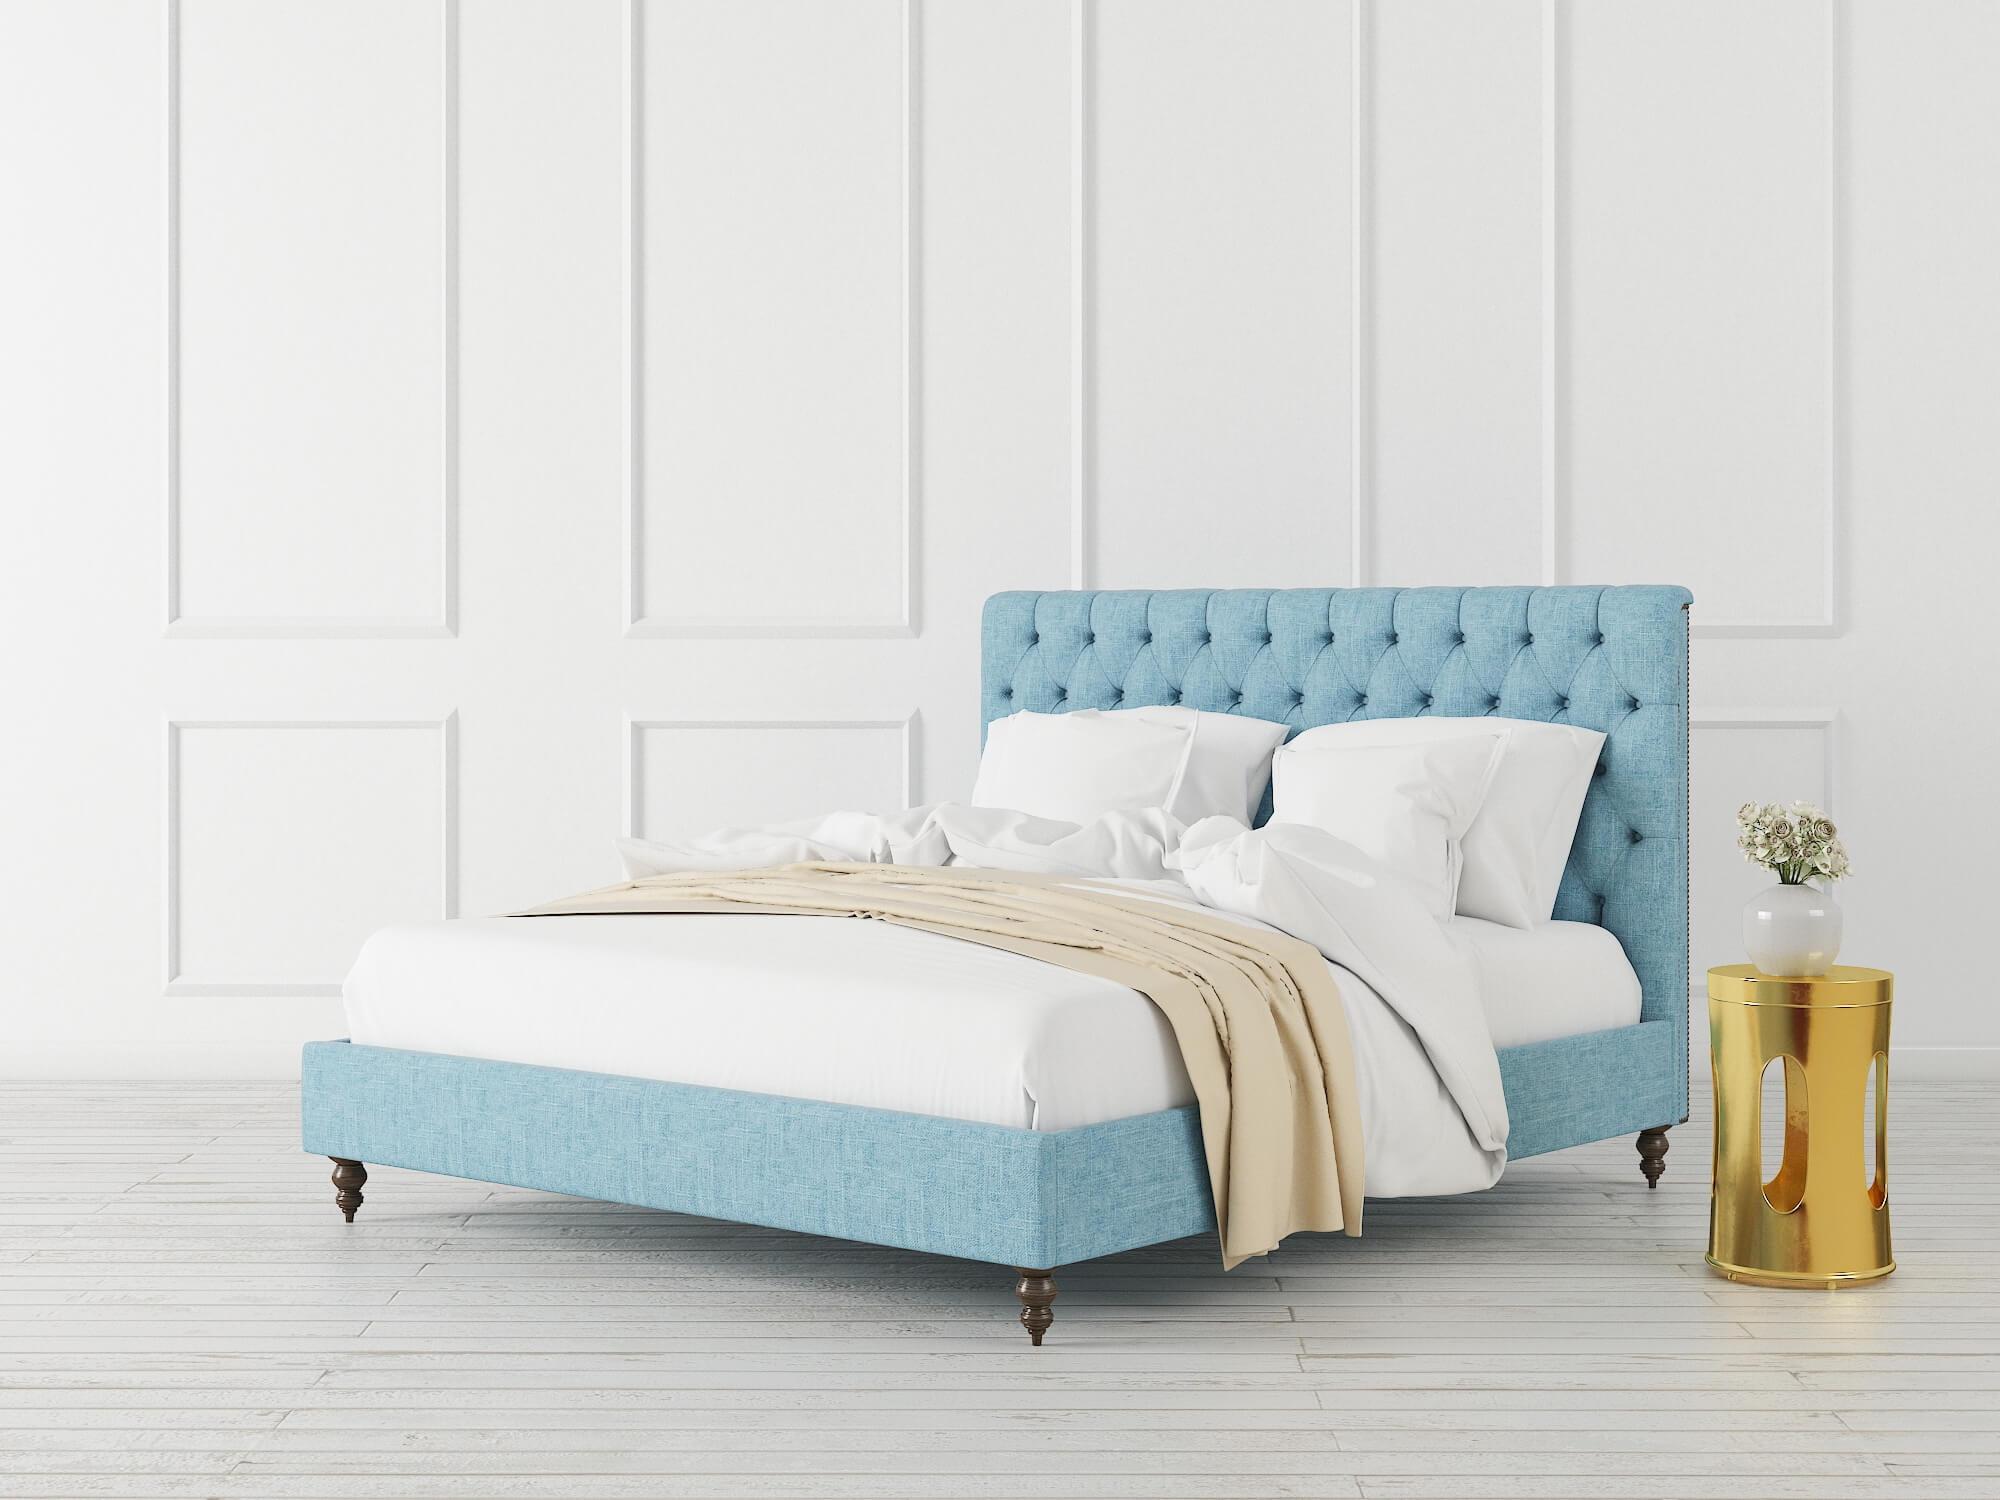 Remy Bed King Room Background